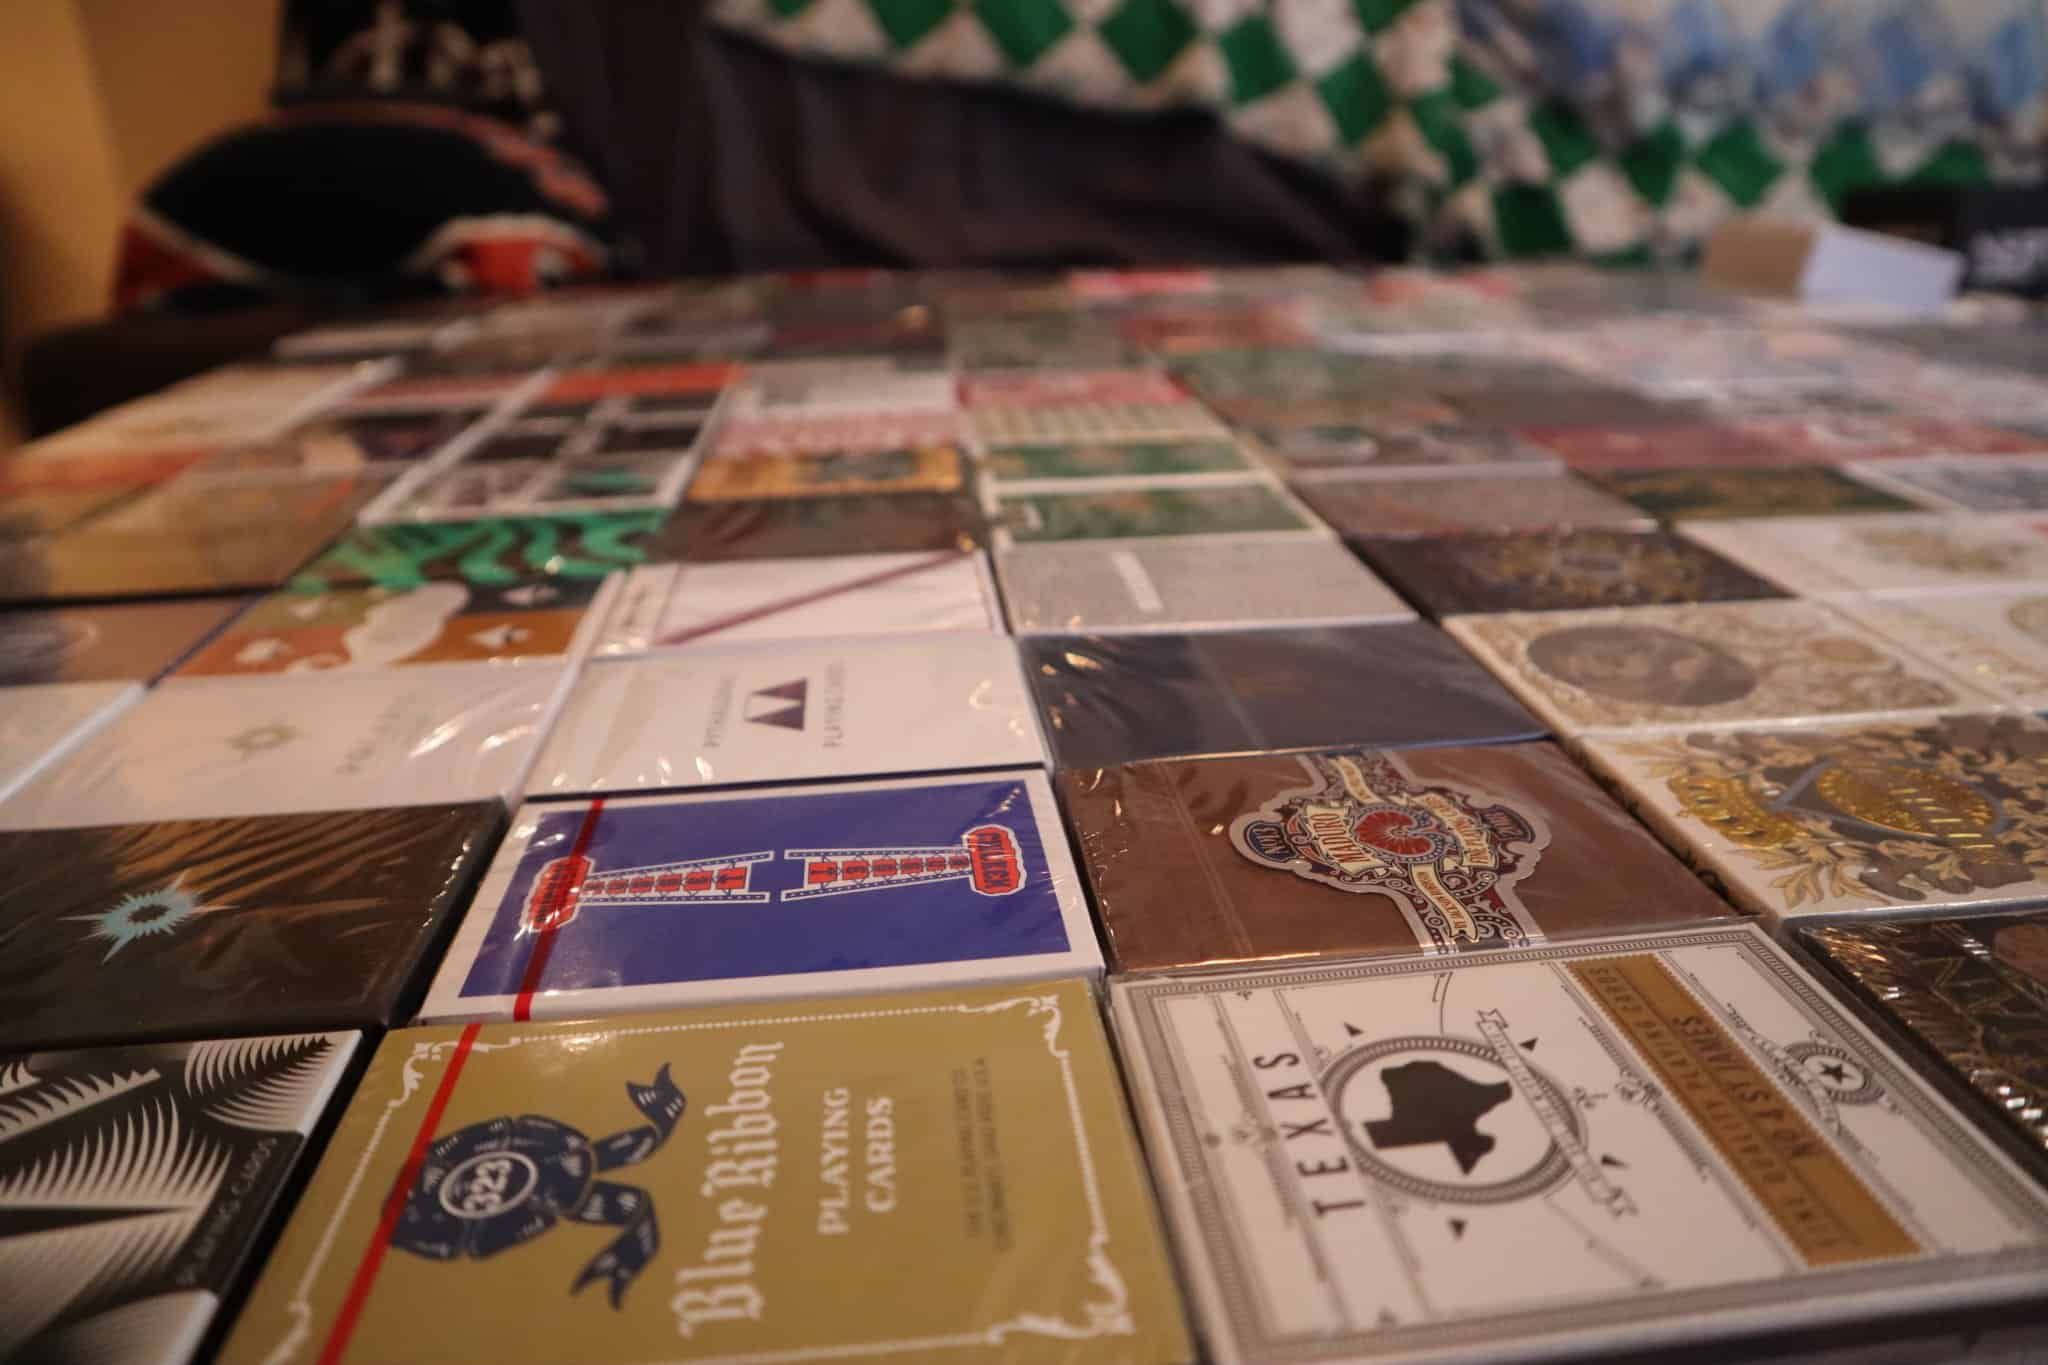 Currently 202 decks not counting doubles. I am the worst photographer so I hope you can see them all